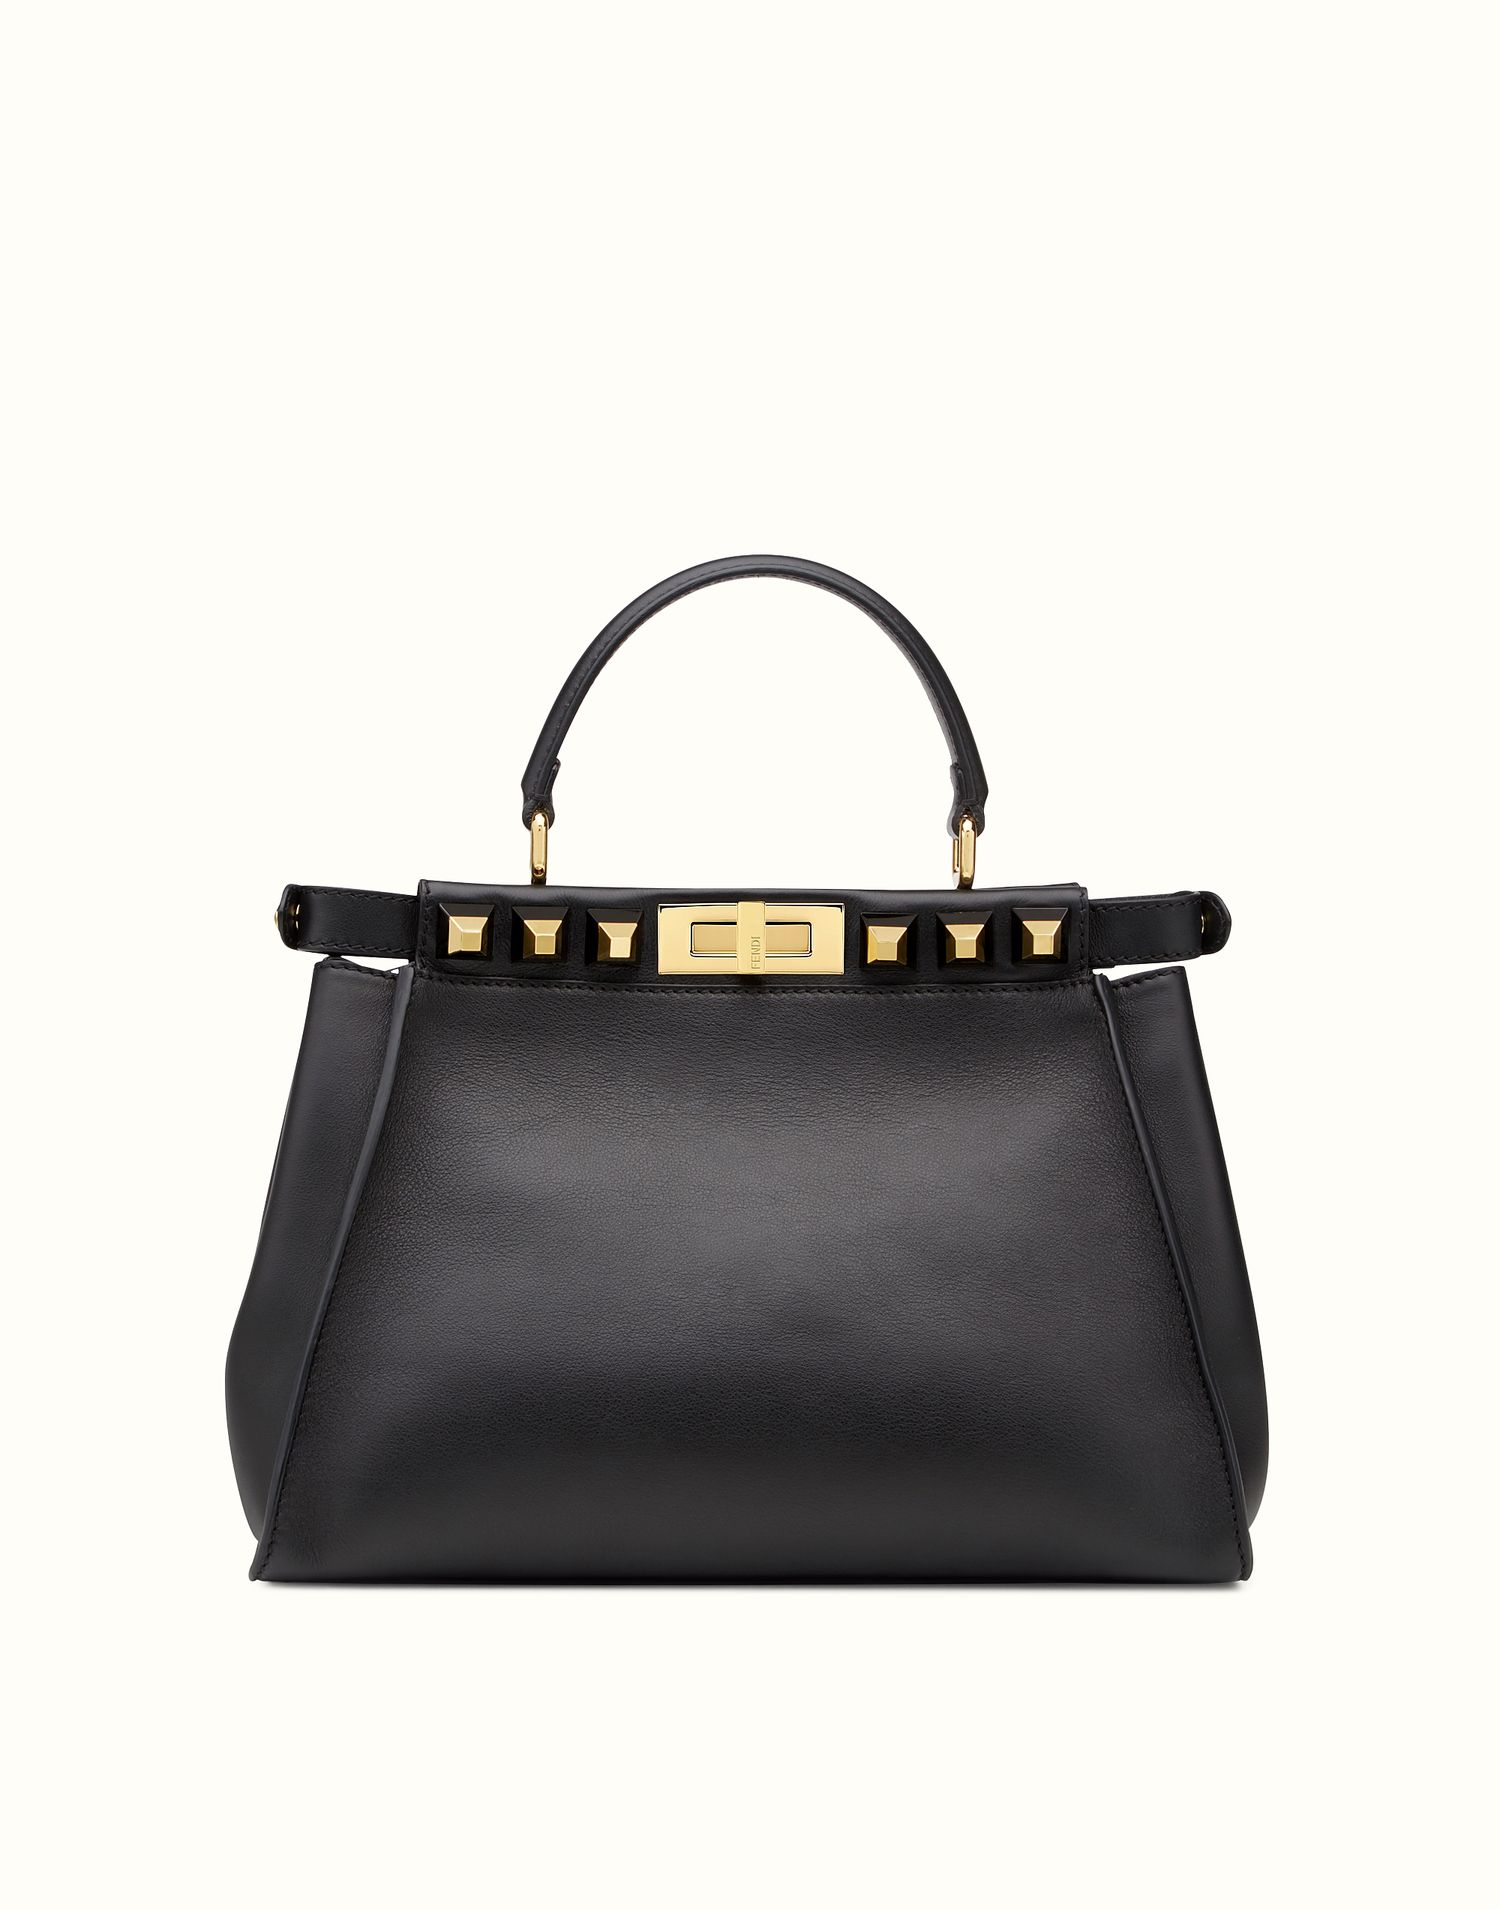 Fendi Kaboo Regular Gold Edition Black Leather Handbag With Studs